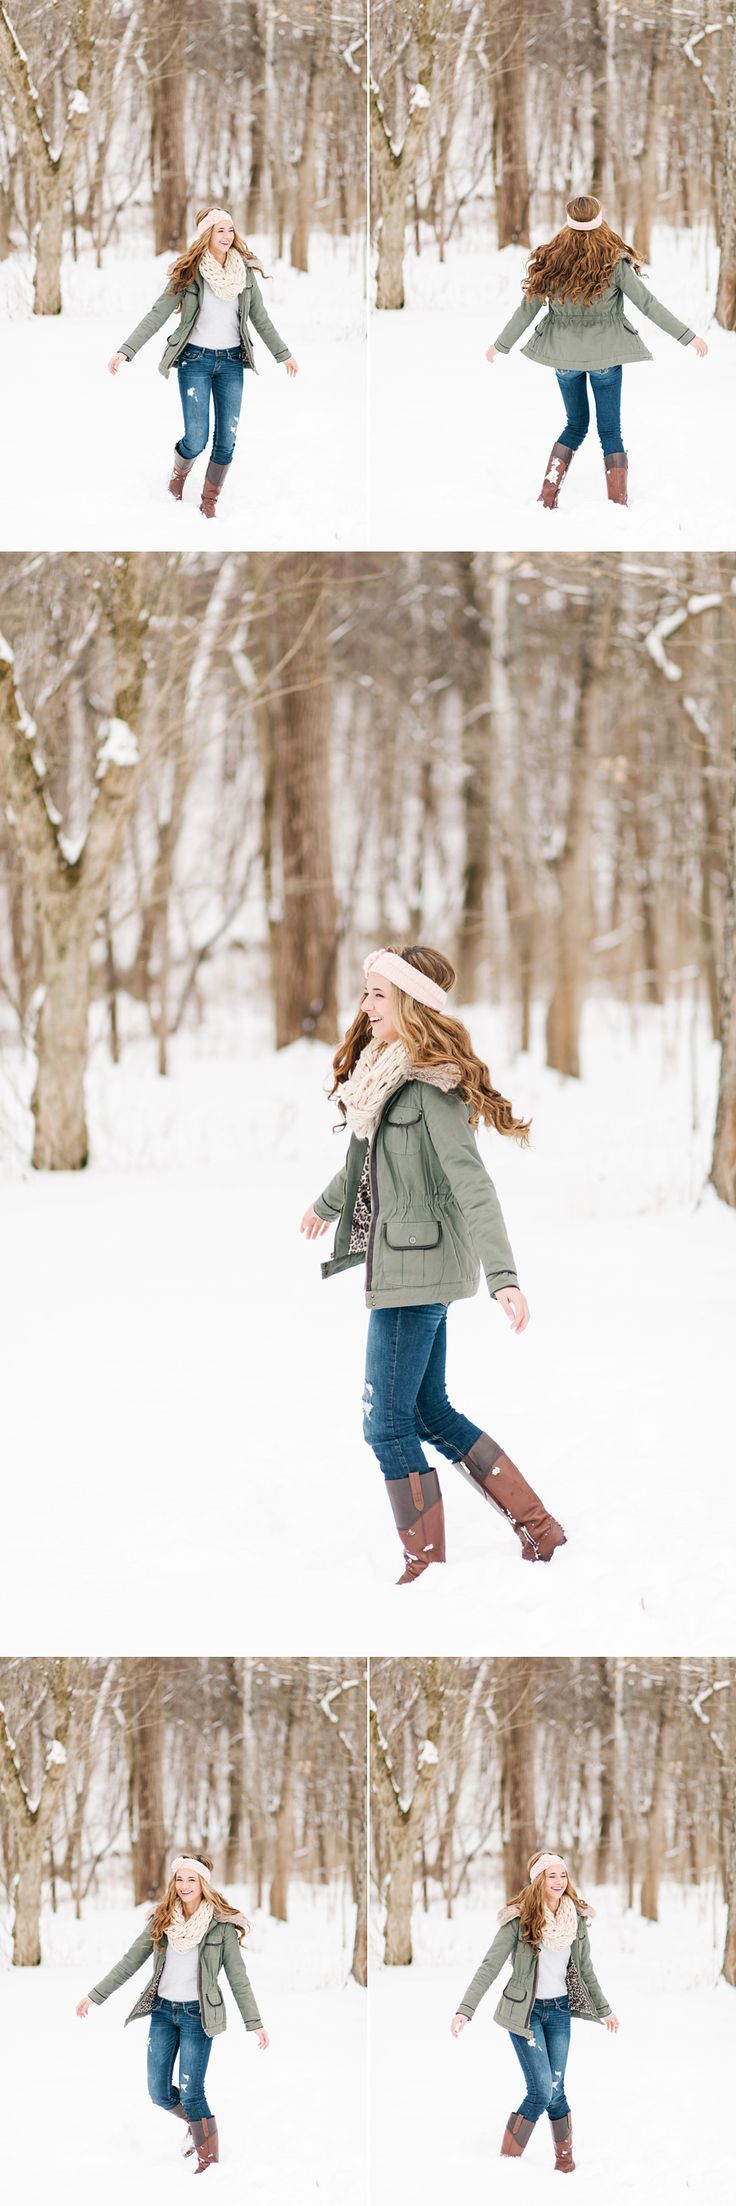 Lux Senior Photography - Snowy Senior Portraits in Bellbrook, Ohio